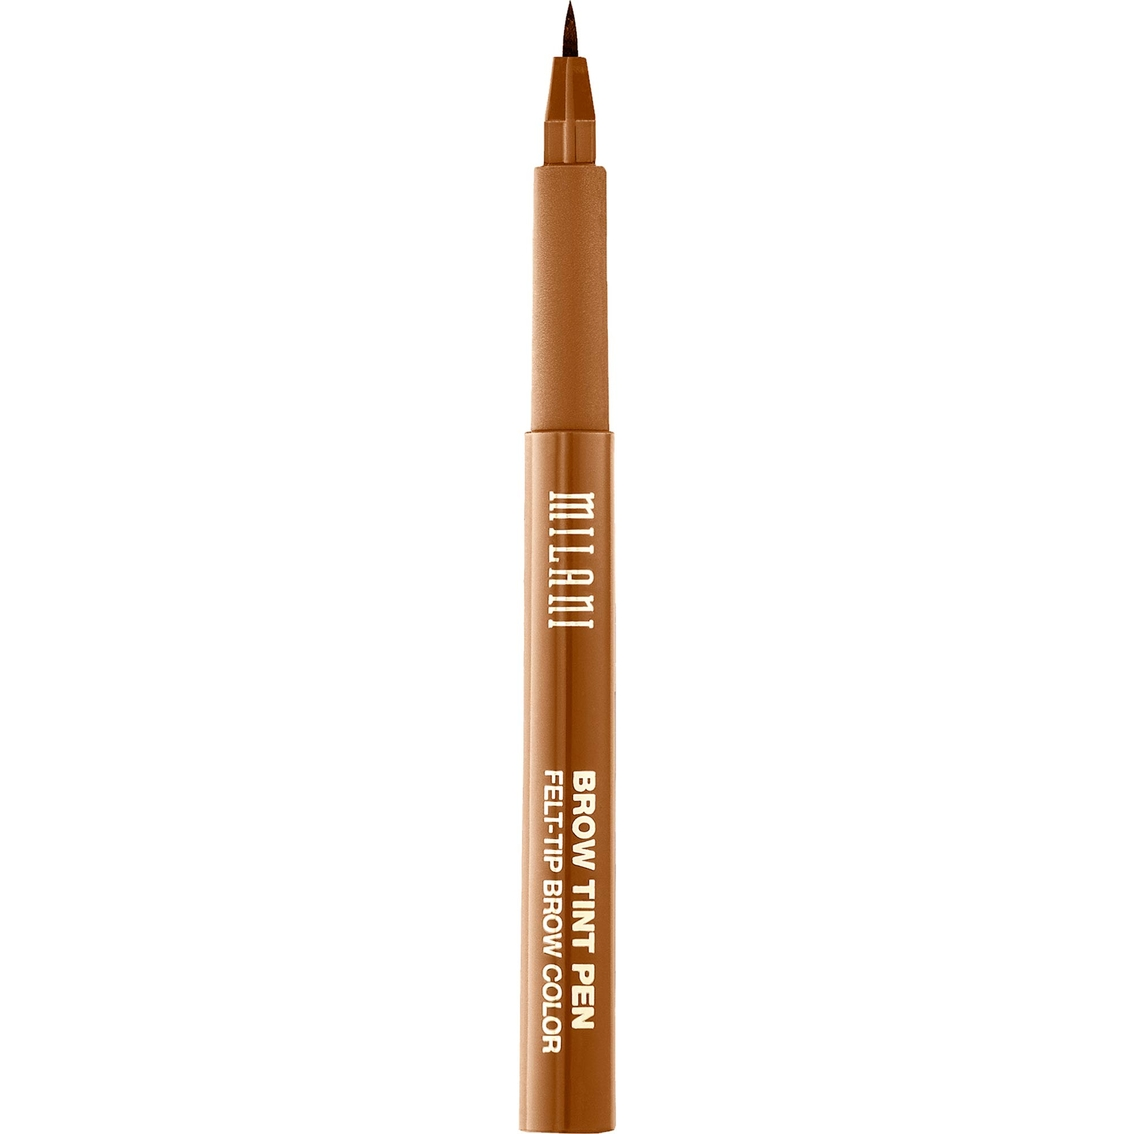 Milani Brow Tint Pen Brows Beauty Health Shop The Exchange